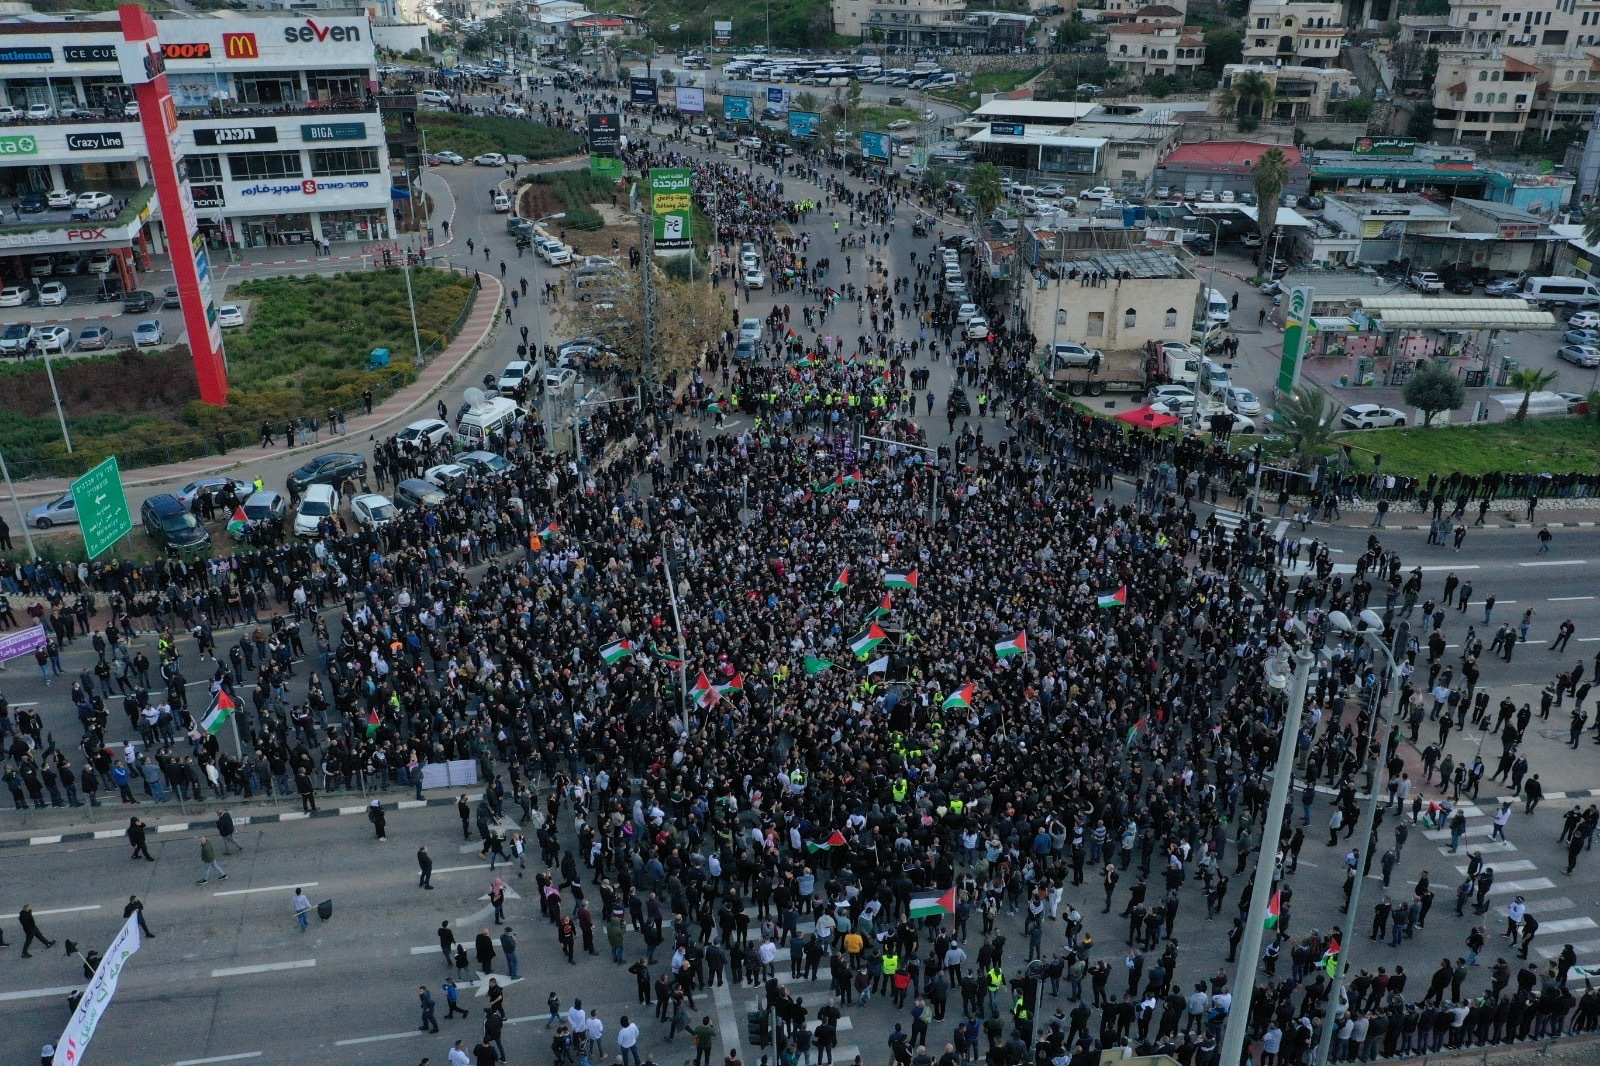 20,000 Palestinians Protest Against Police Brutality in Umm al-Fahm